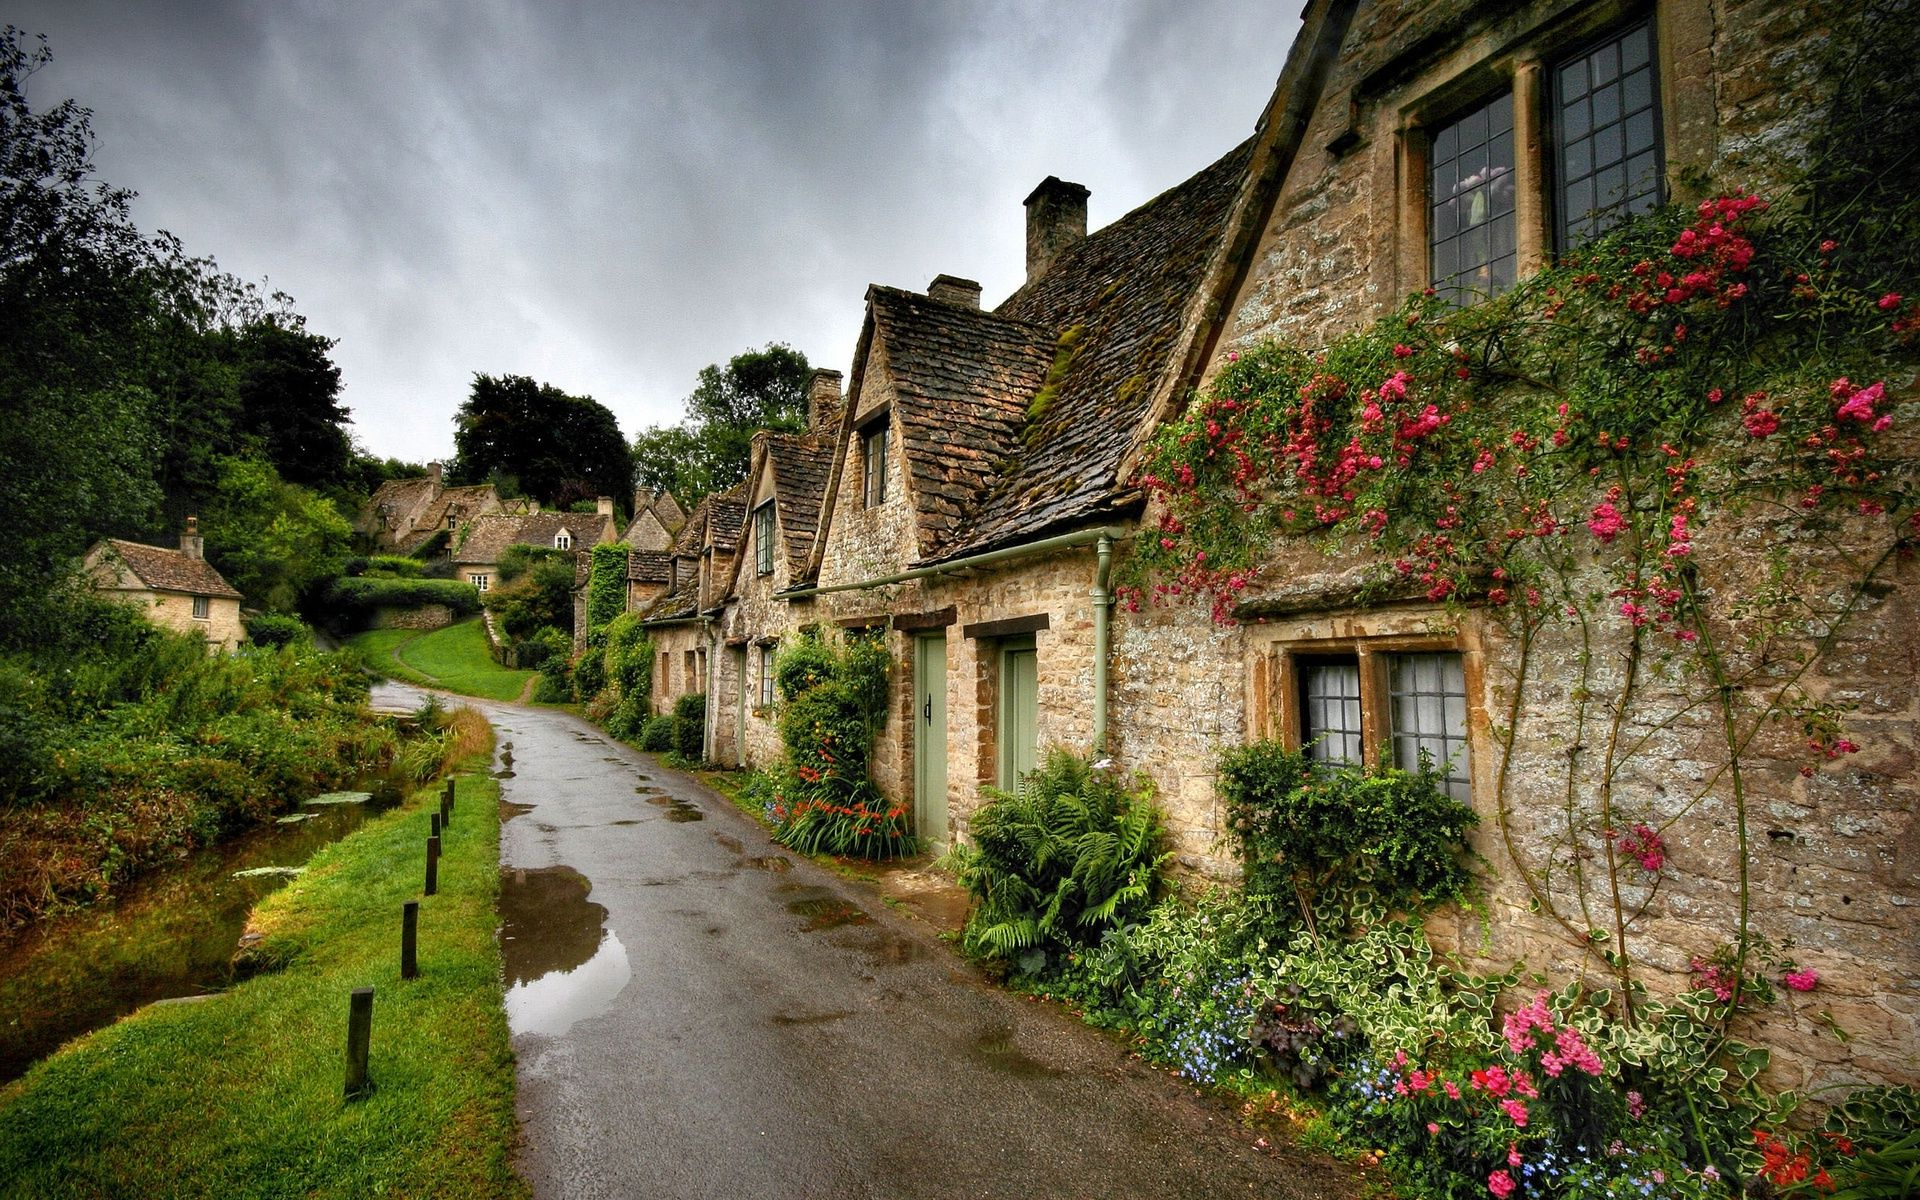 modern village wallpaper photos is high definition wallpaper you can 1920x1200